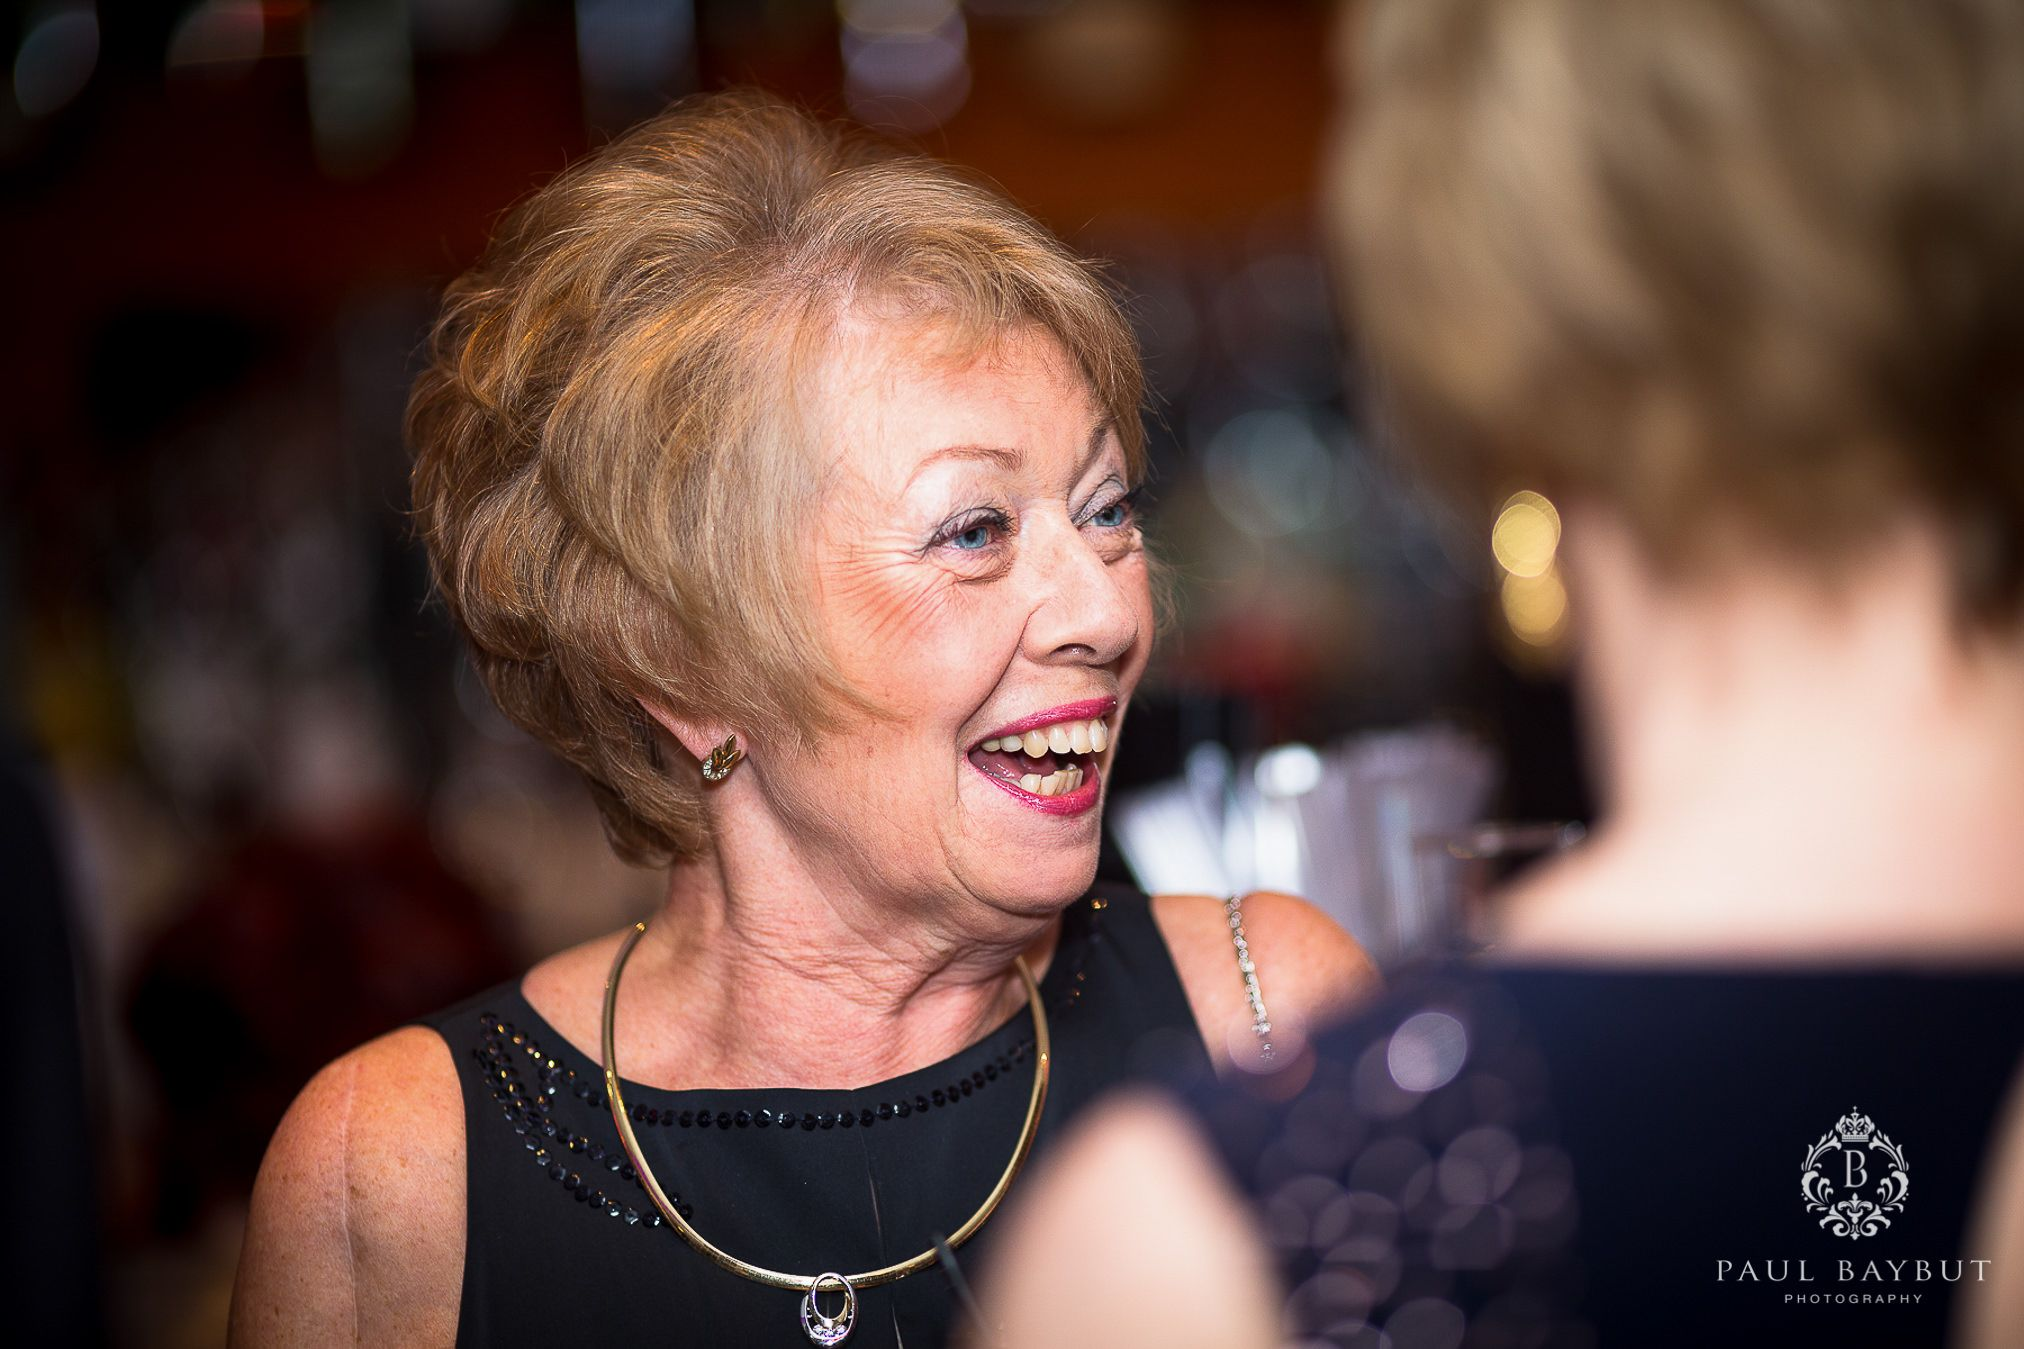 Smiling female guest at a fundraising charity ball event in Manchester